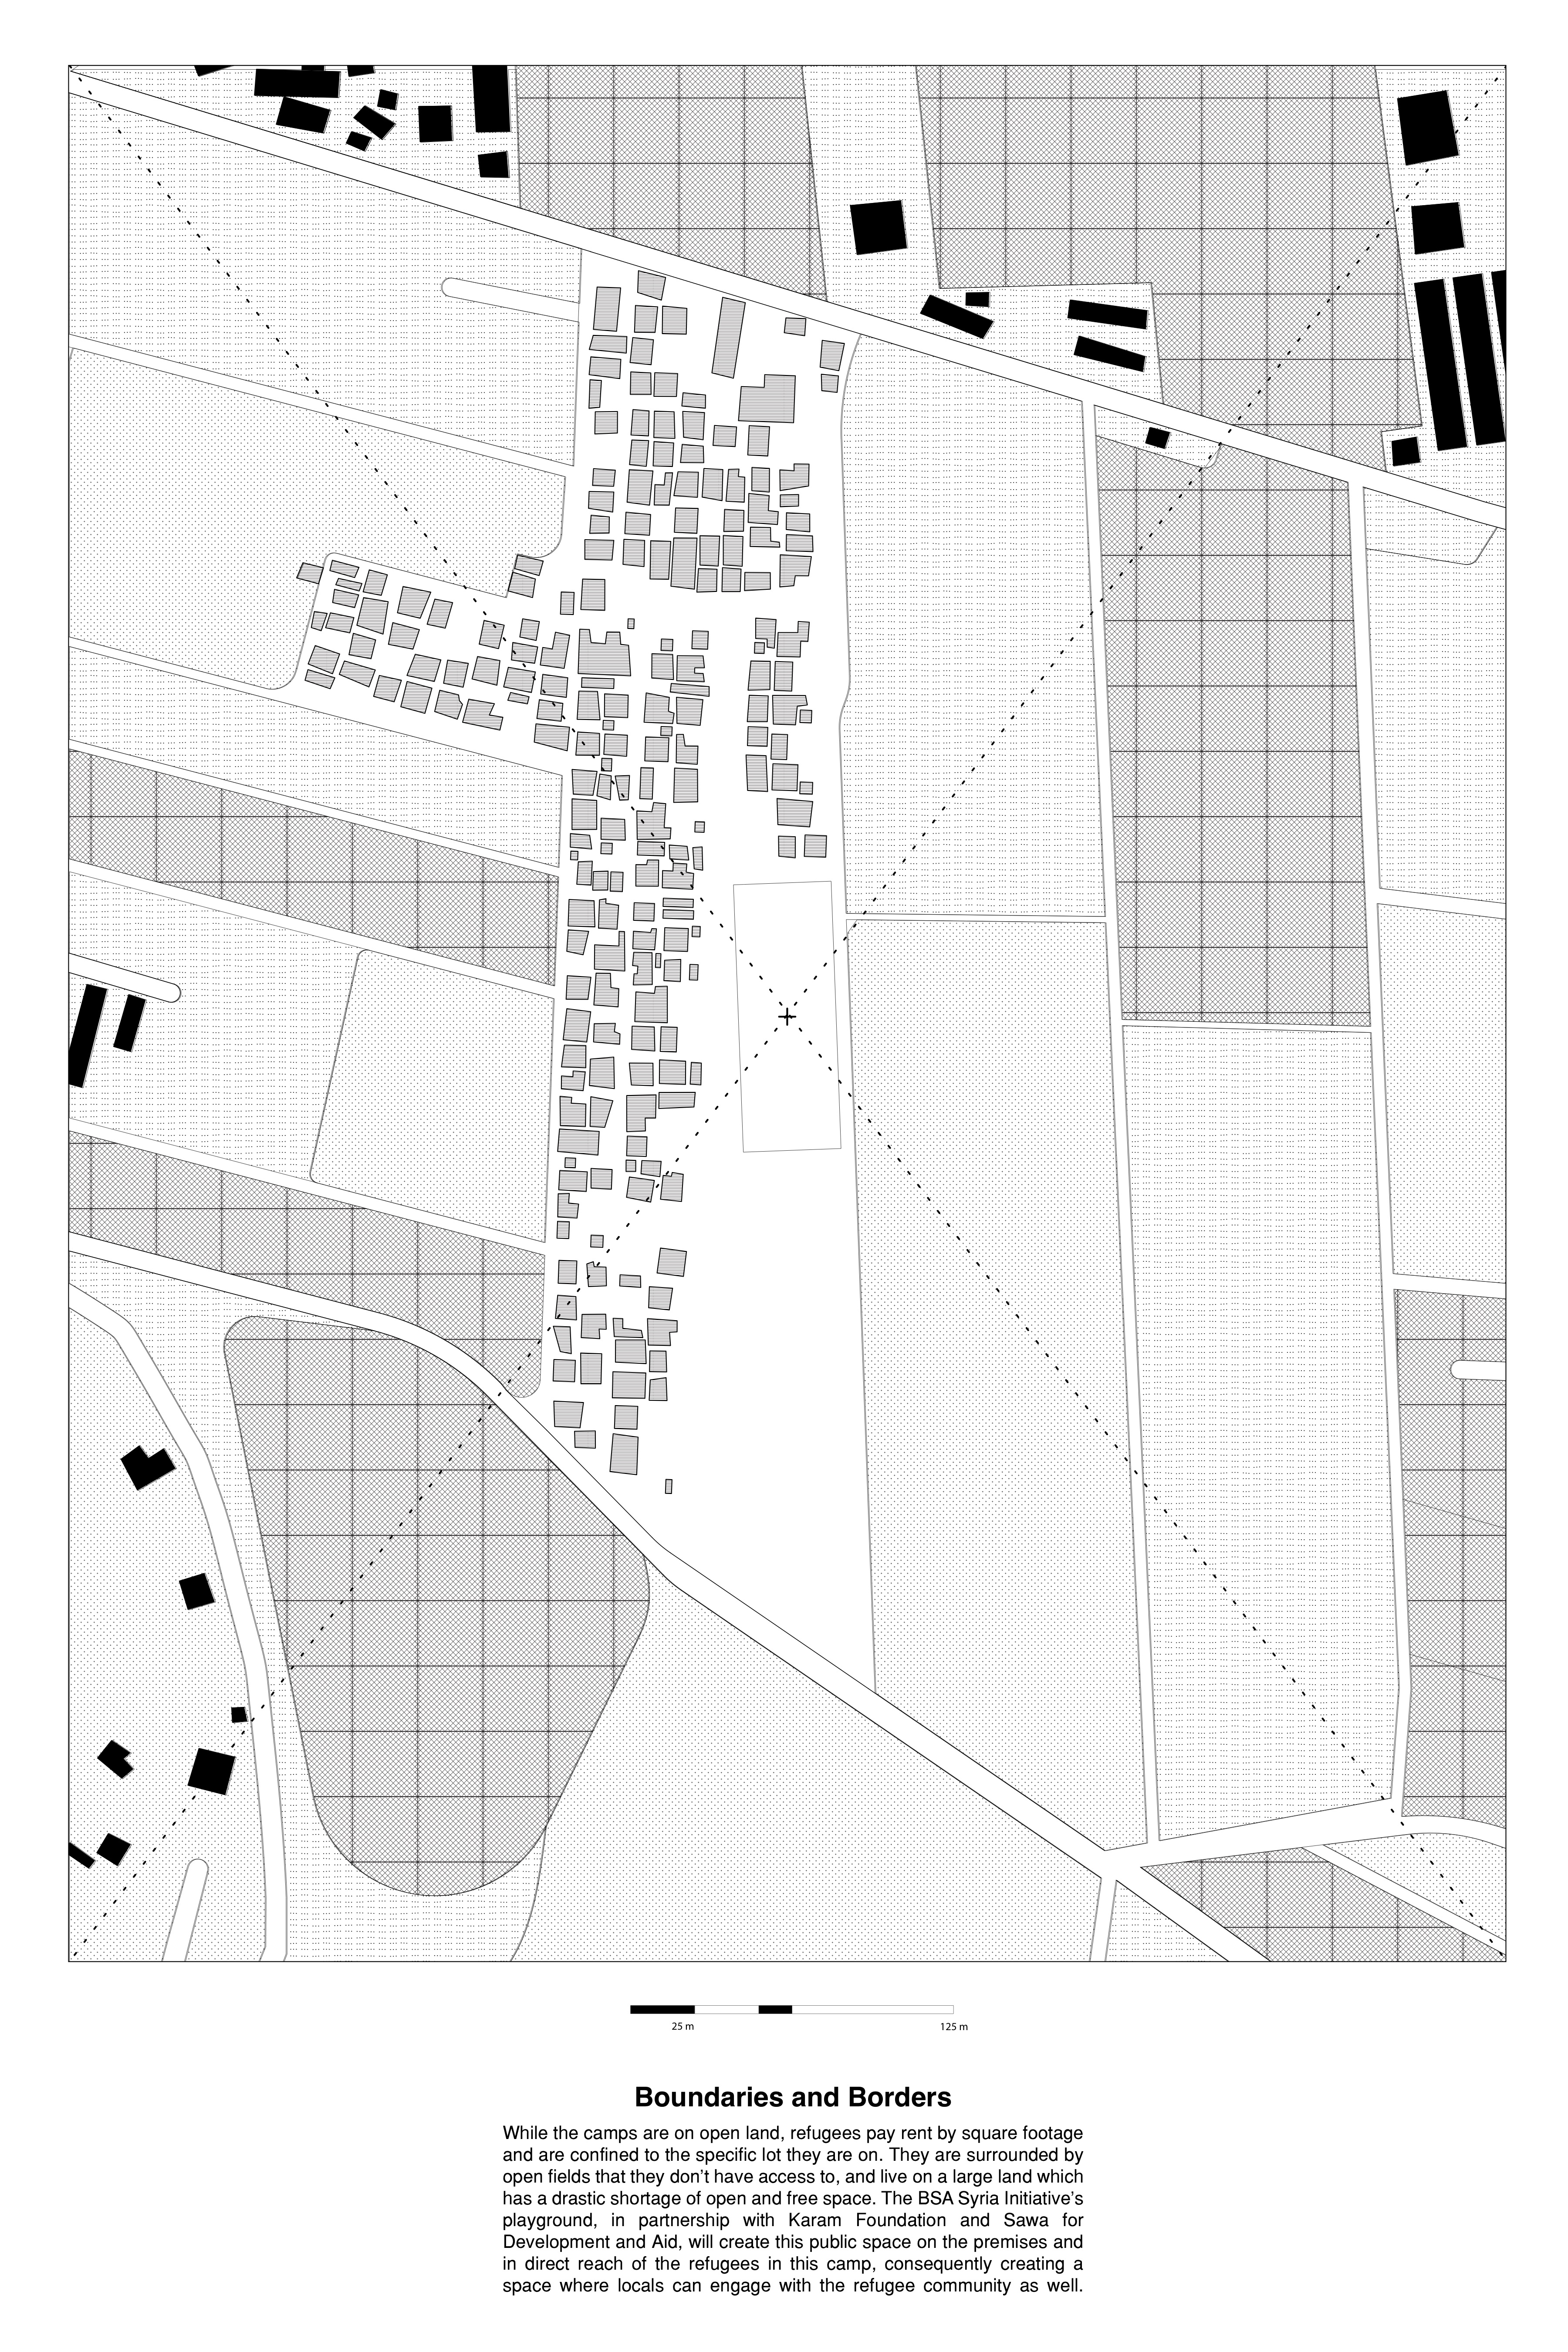 Sitemap - scale 1:1000